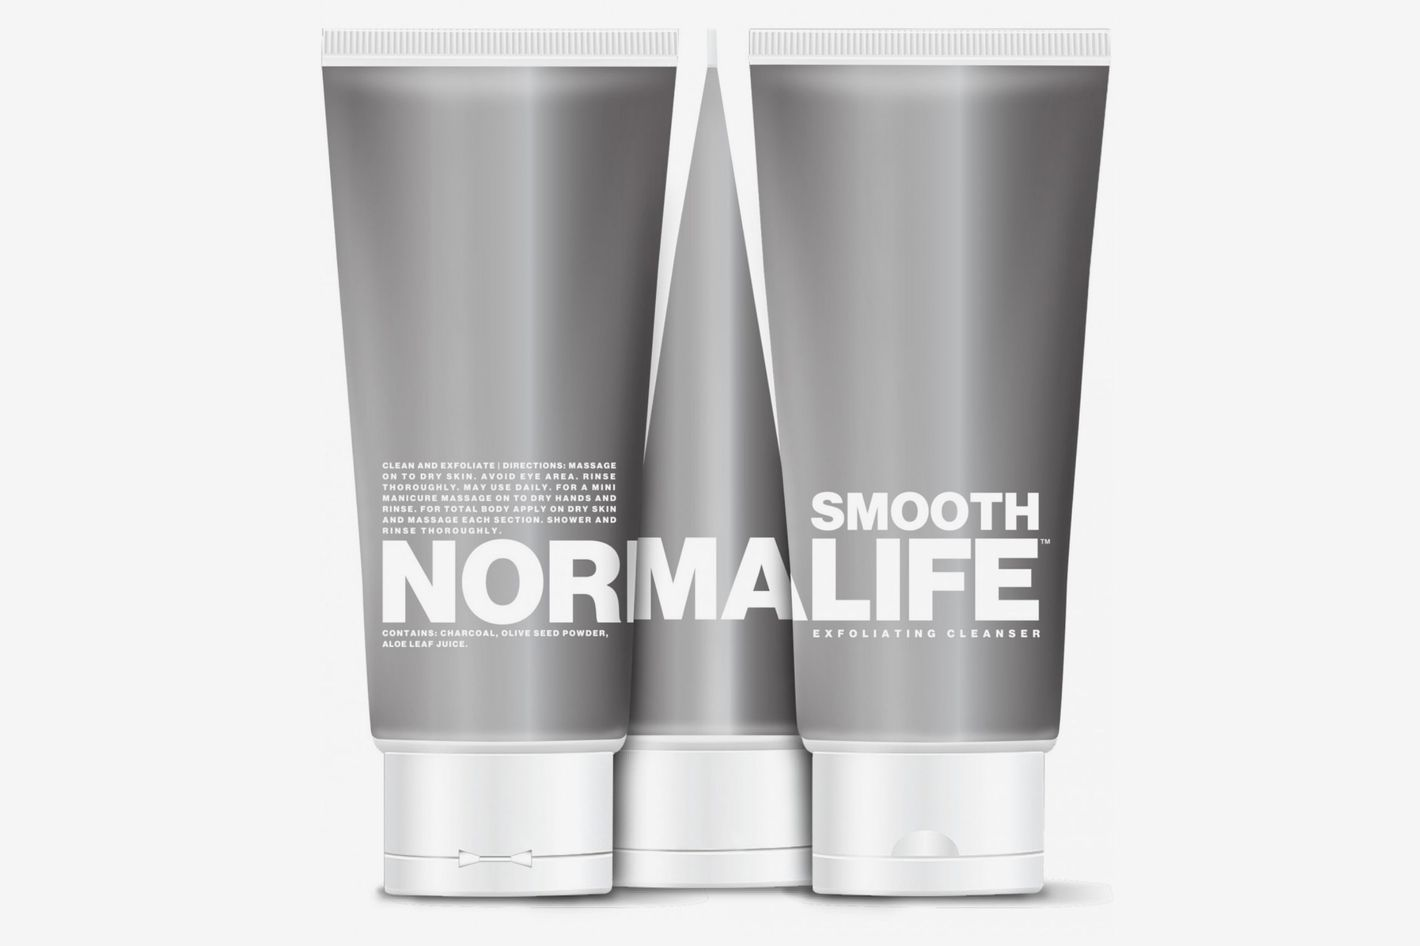 NormaLife Smooth Exfoliating Cleanser